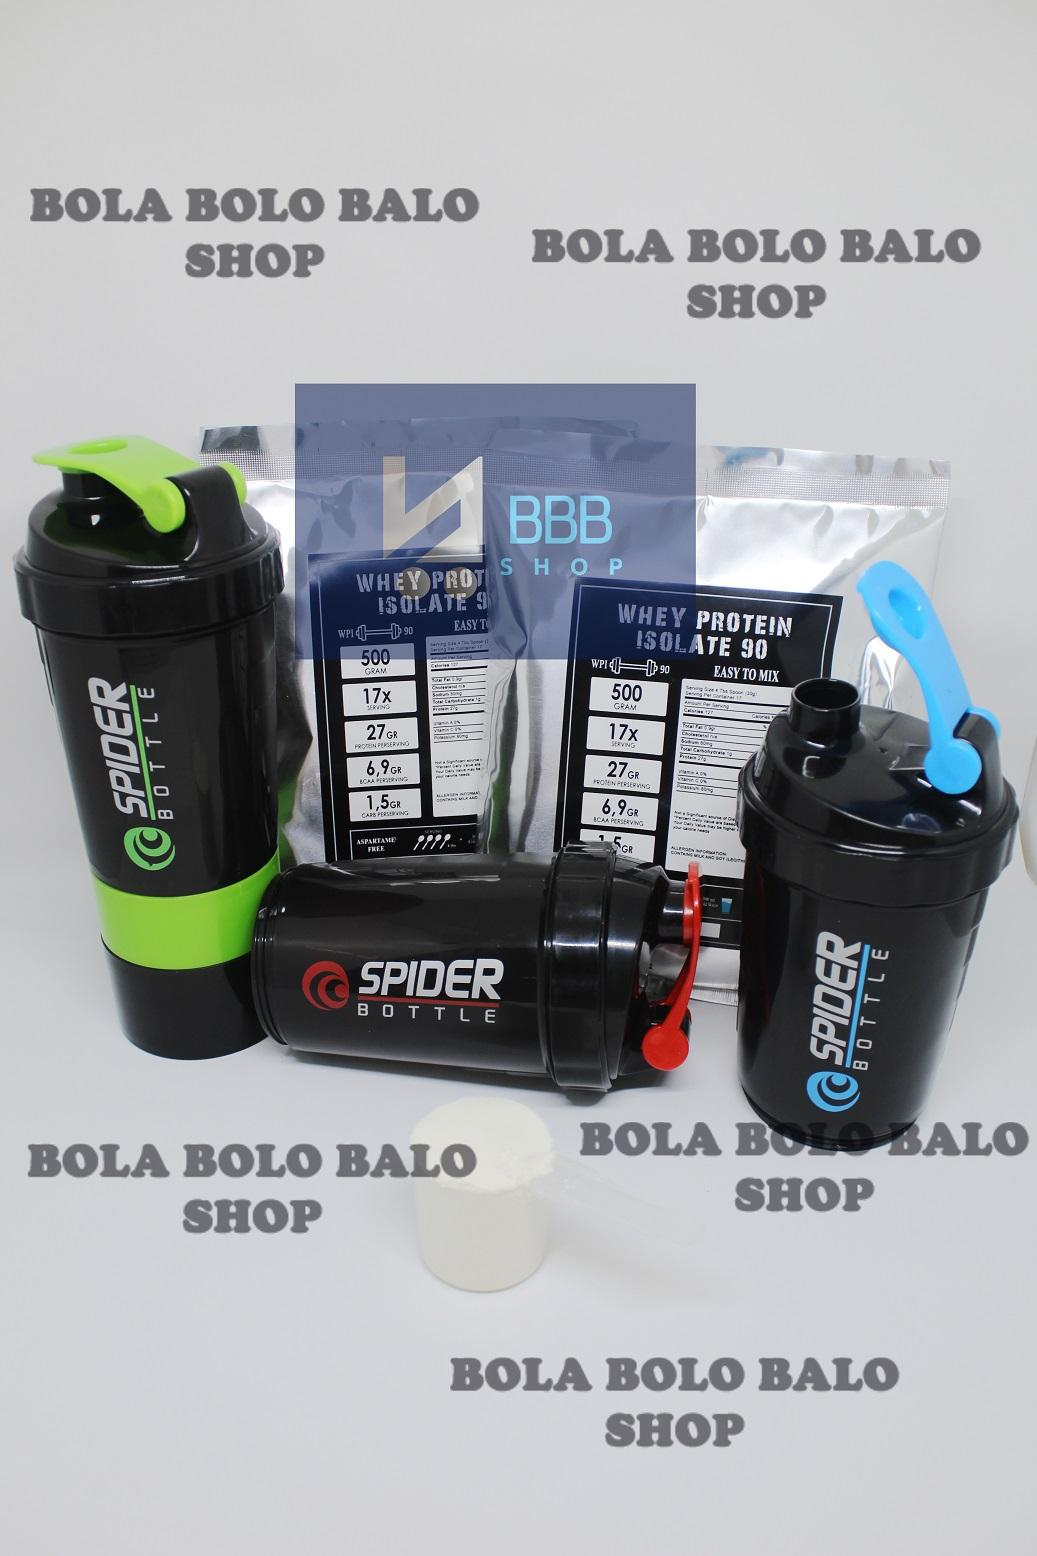 Whey Protein Isolate Wpi 90 Murah Plain / Unflavored / Putih 500gram By Bola Bolo Balo Shop.